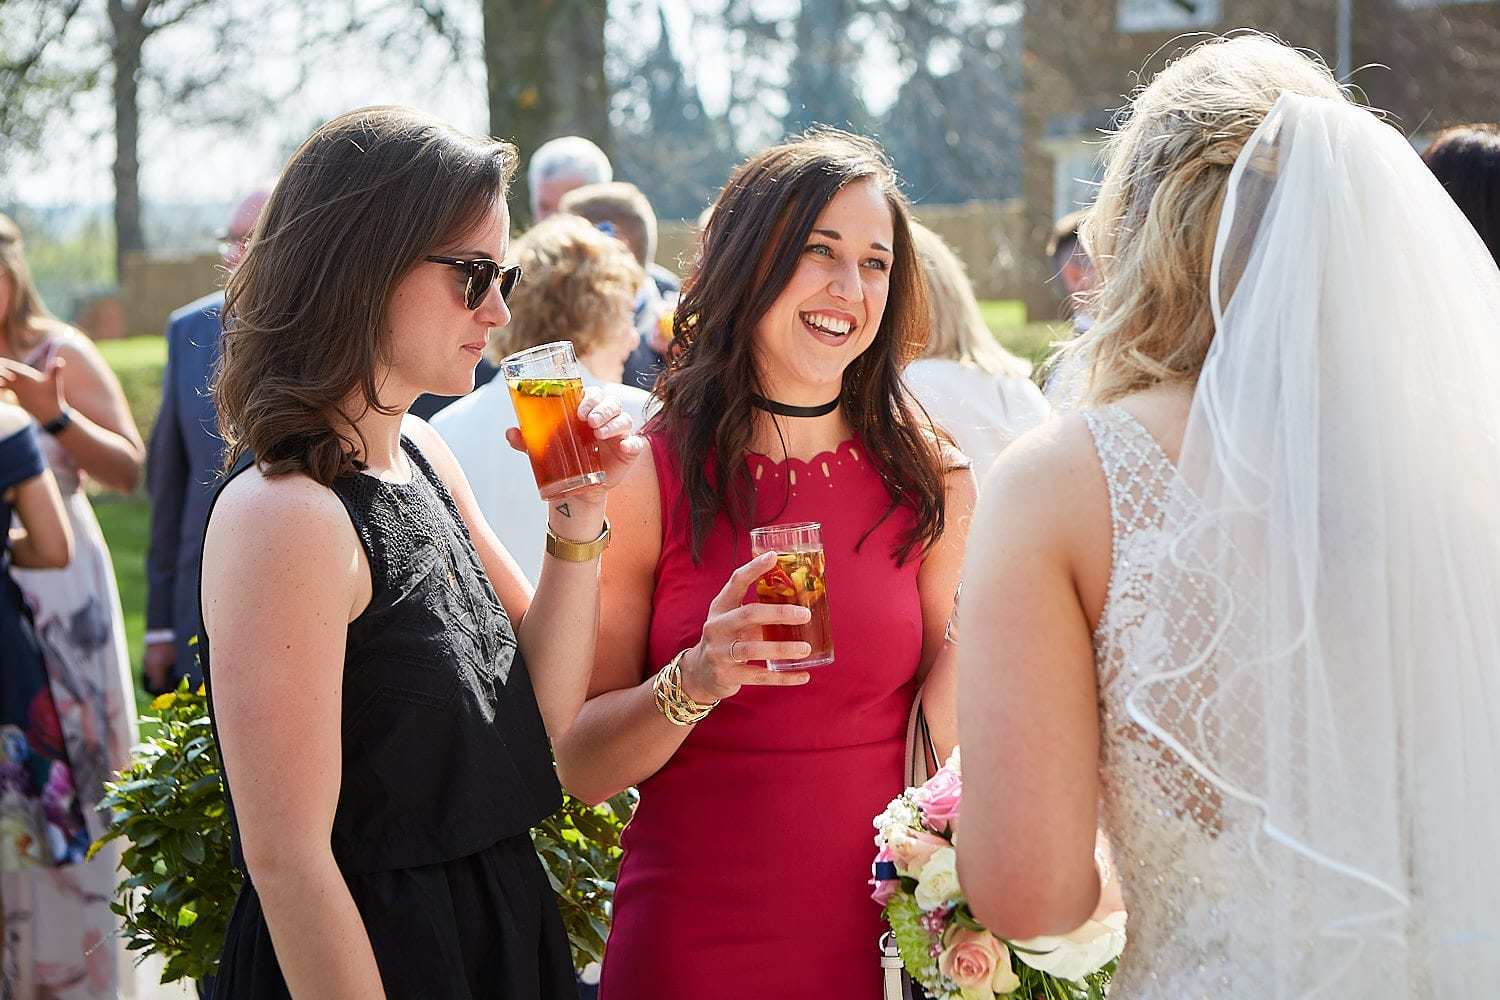 Friends look lovingly at the bride after she has just been married